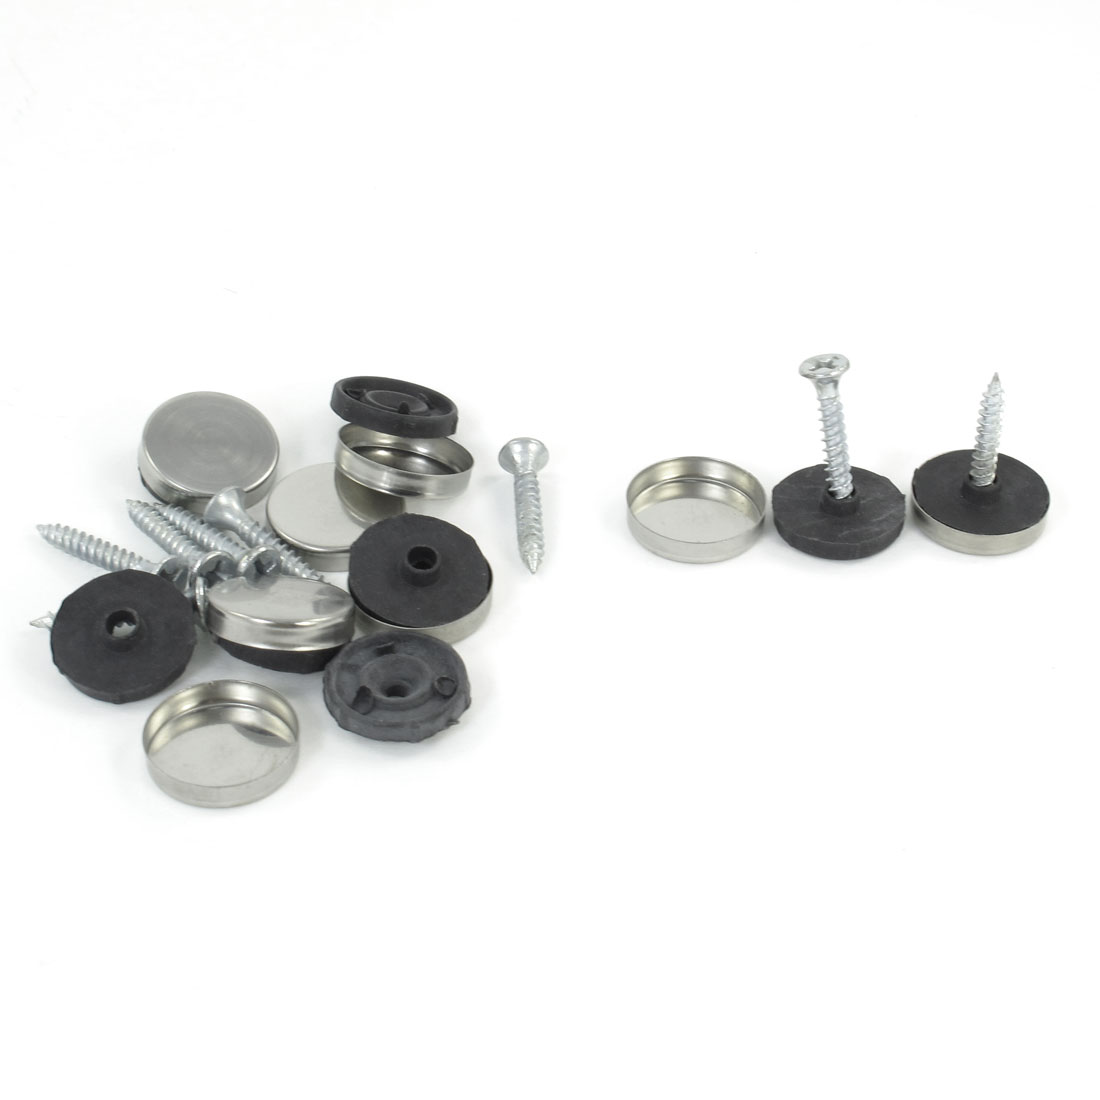 8 Pcs 19mm Diameter Cap Metal Screw Nails for Mirror